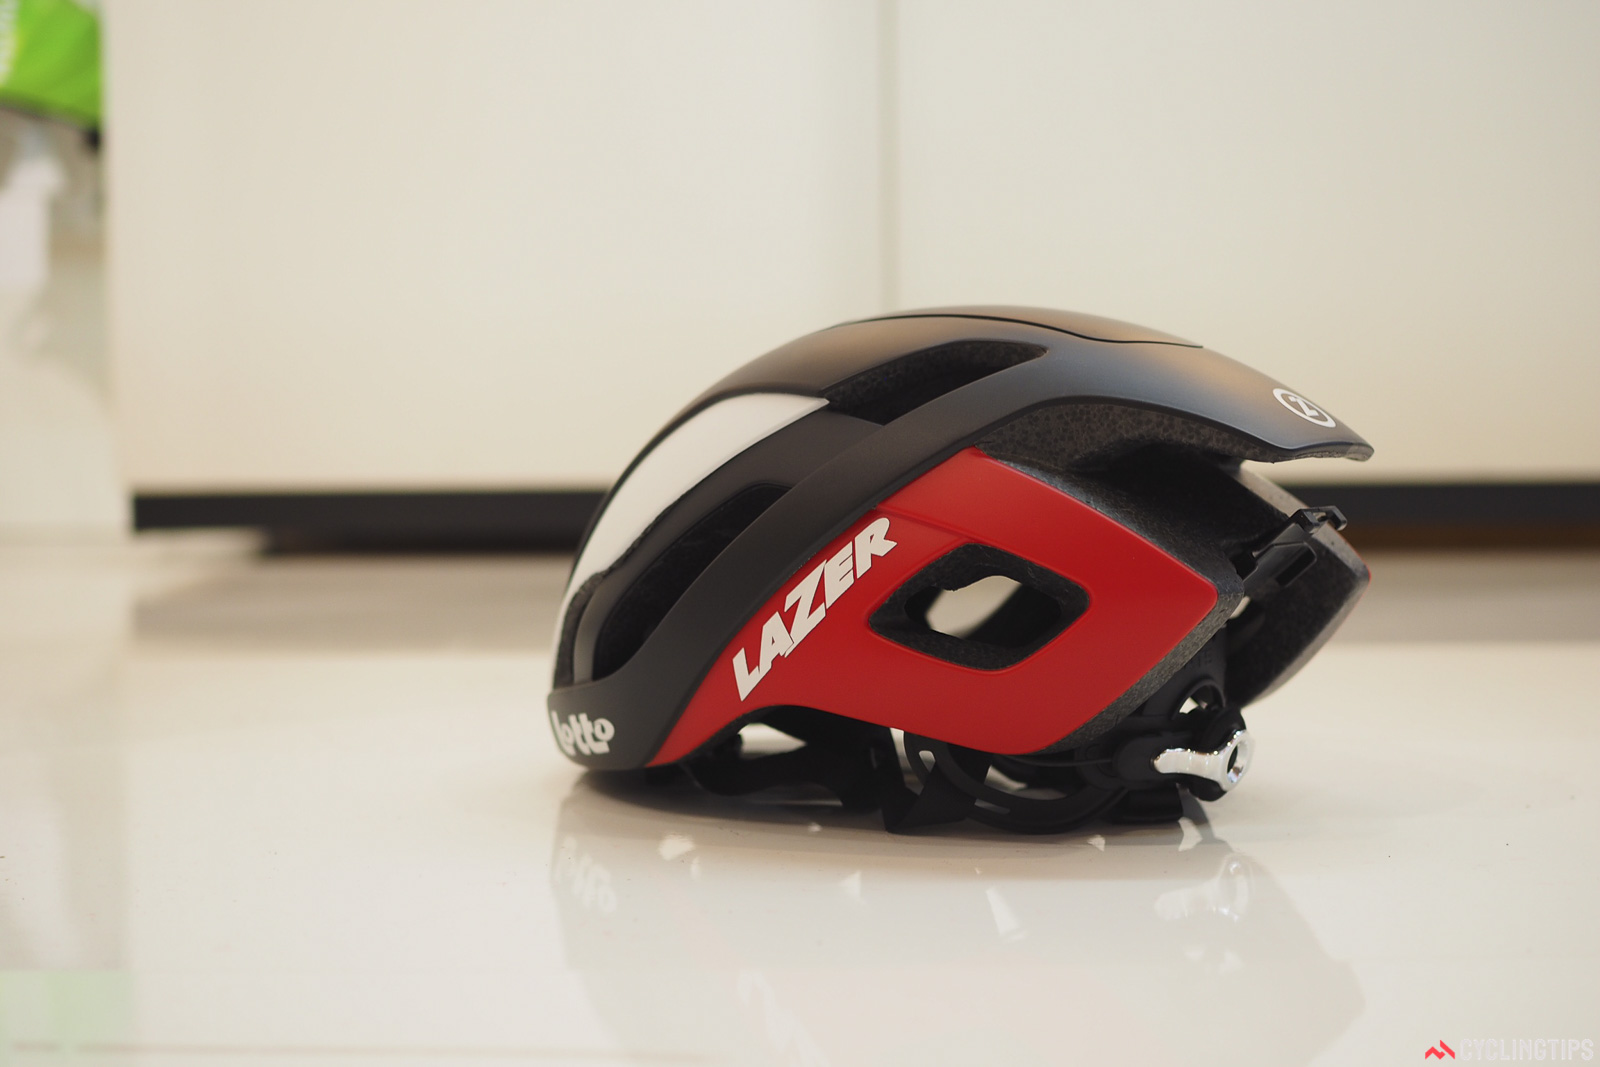 The Lazer Bullet aero road helmet features a super low profile, modest venting, and a tapered tail. Photo: James Huang.